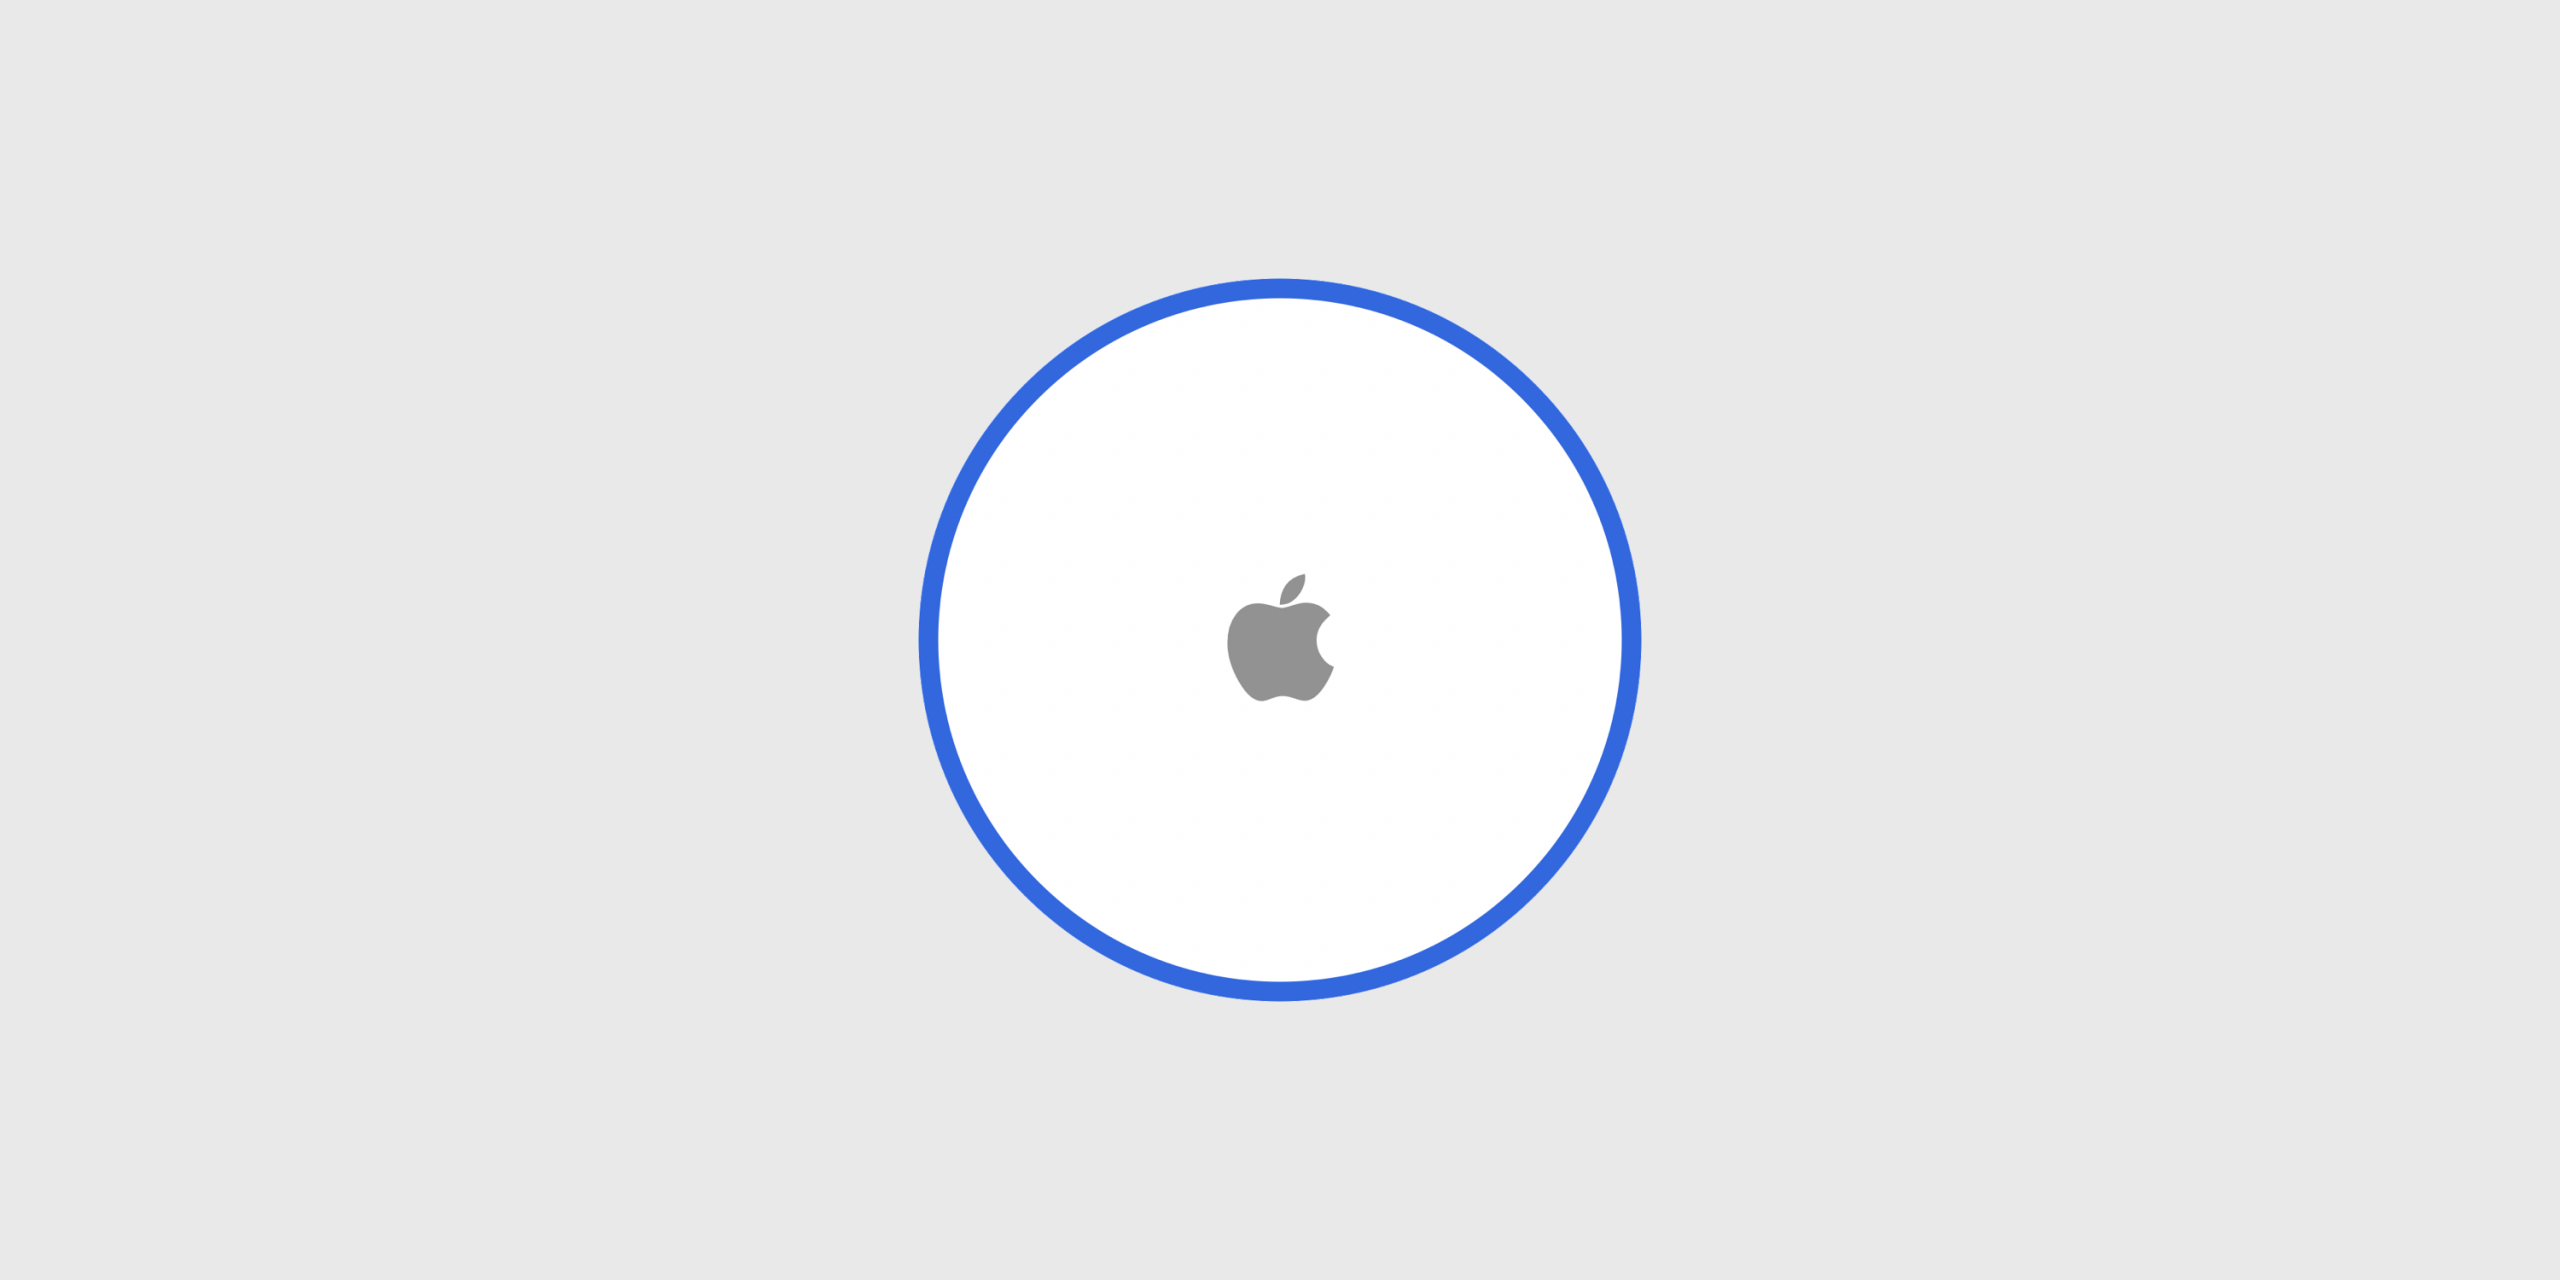 Evidence of Apple's tracking fob appears in iOS 13 beta